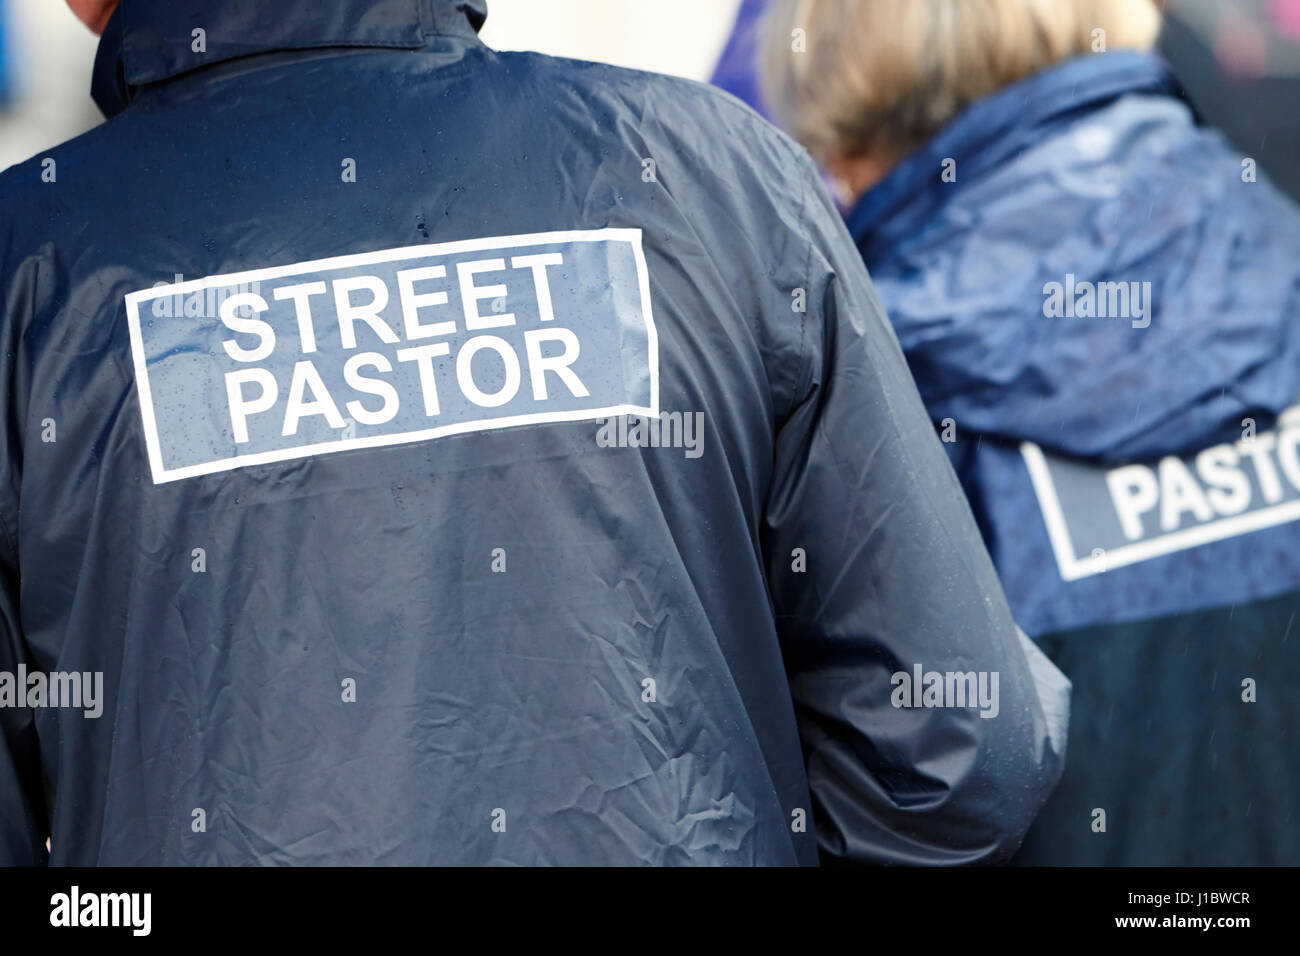 street pastor christians outdoors in the uk - Stock Image